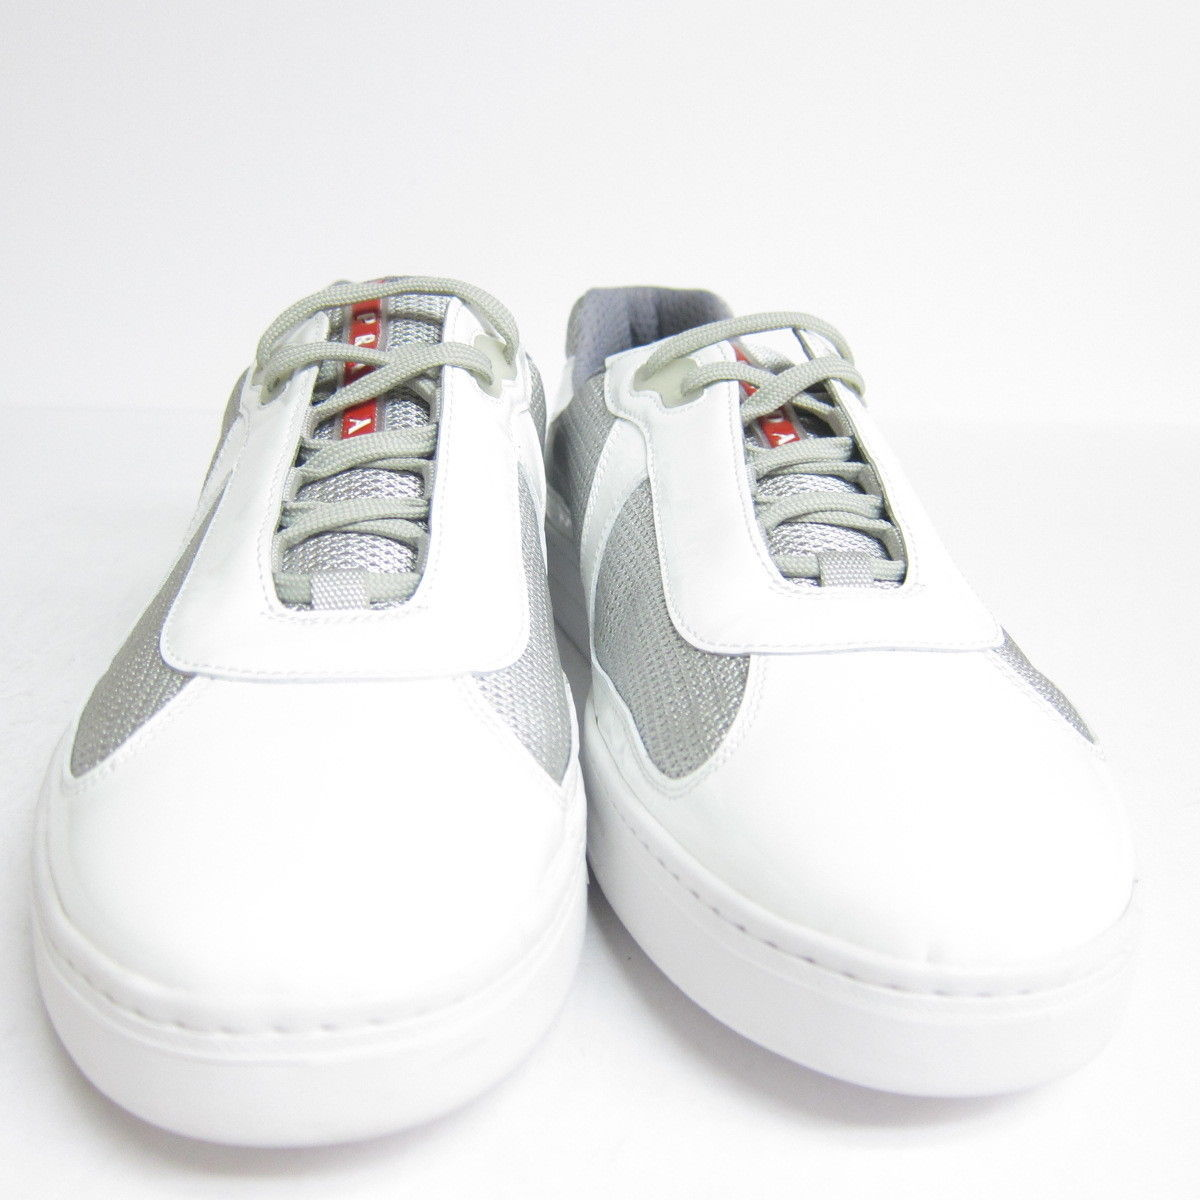 P-556248 New Prada Calzature Uomo White Gray Lace Up Sneakers US 10 UK 9